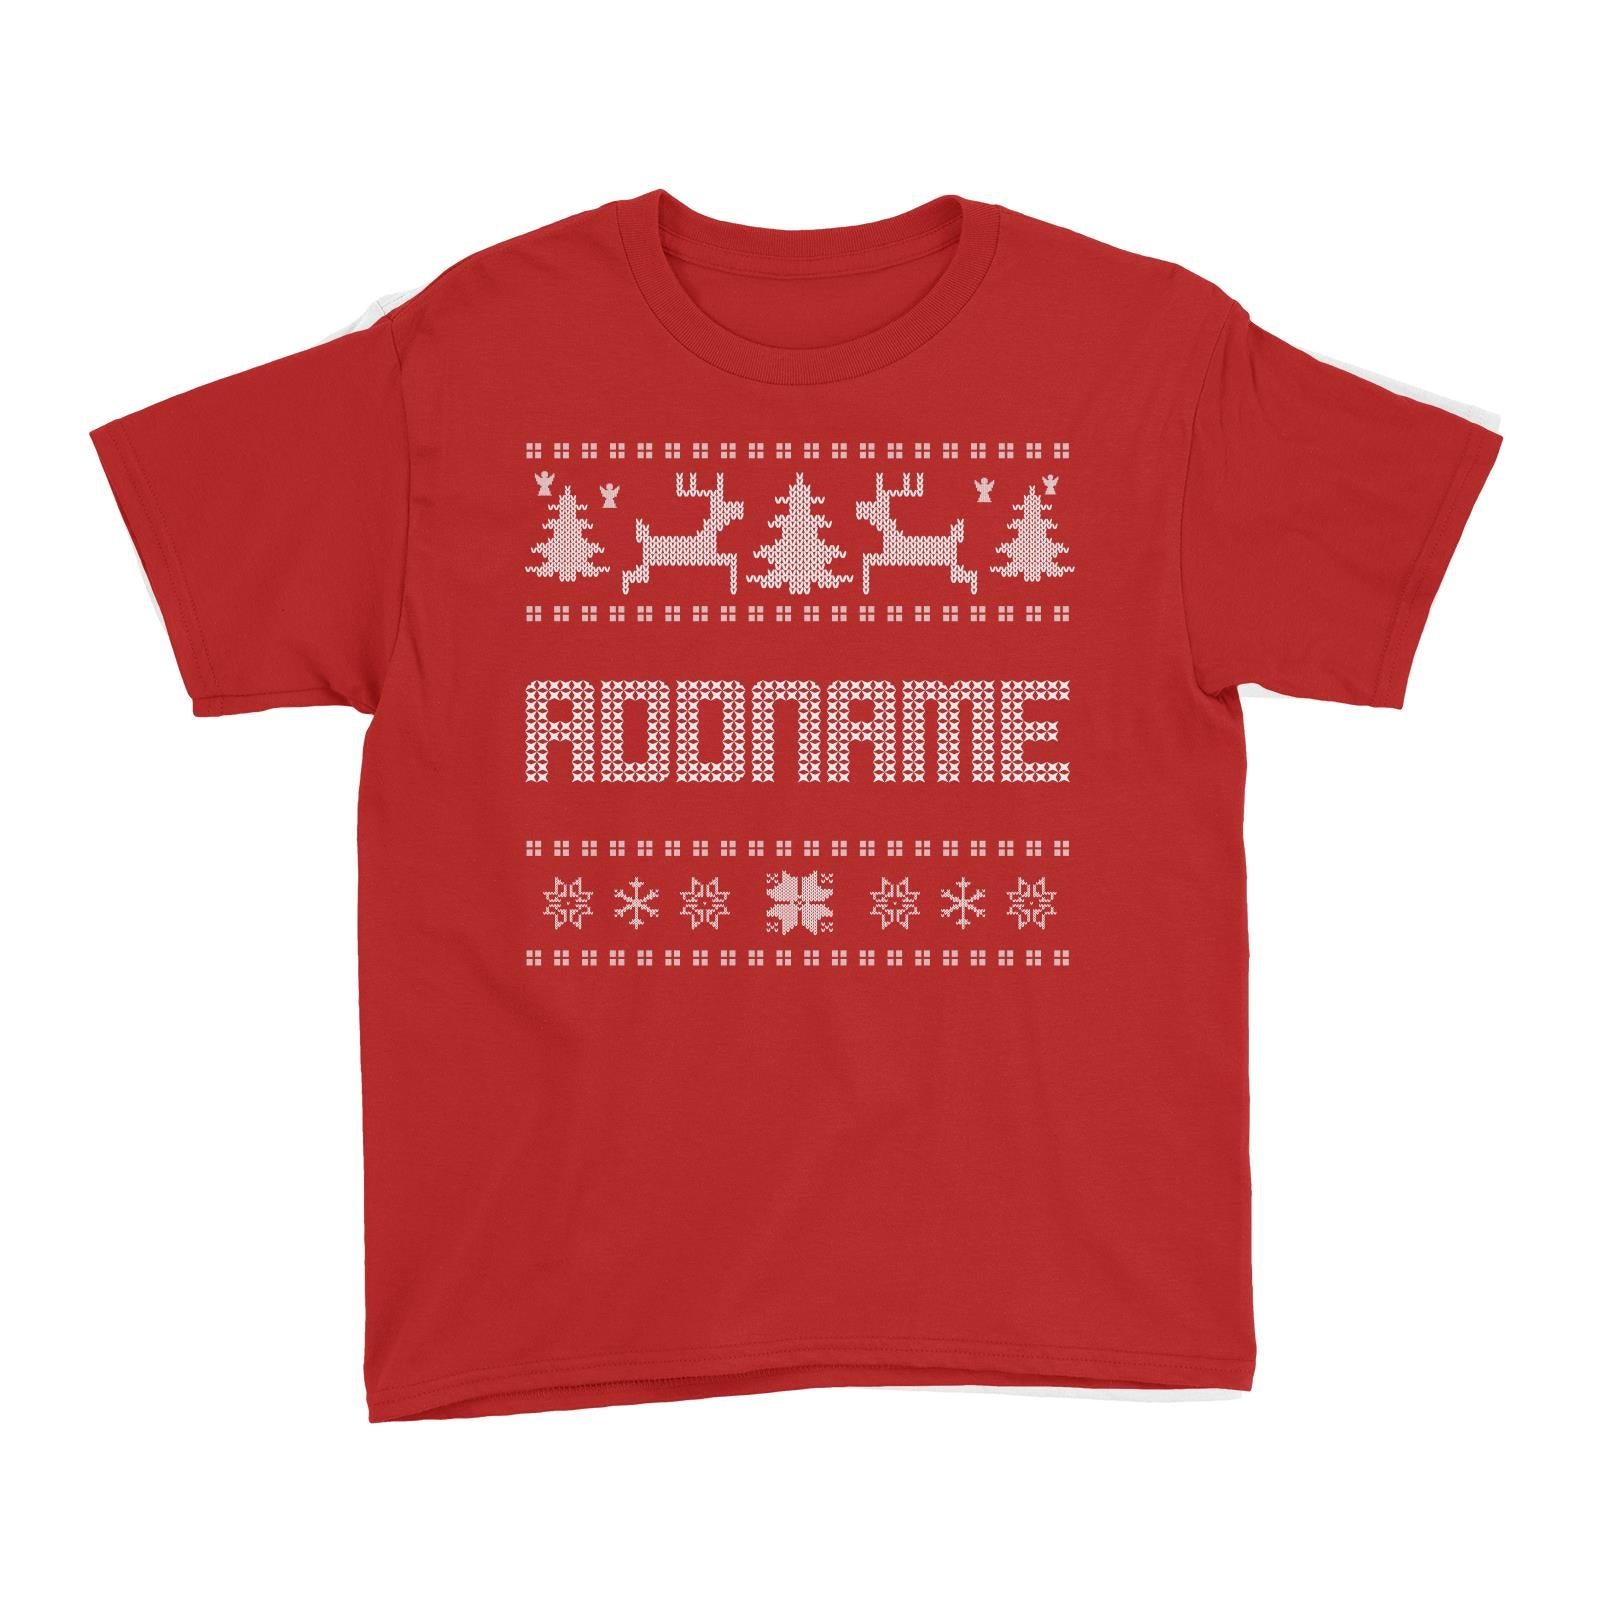 Christmas Sweater Addname Kid's T-Shirt  Matching Family Personalizable Designs